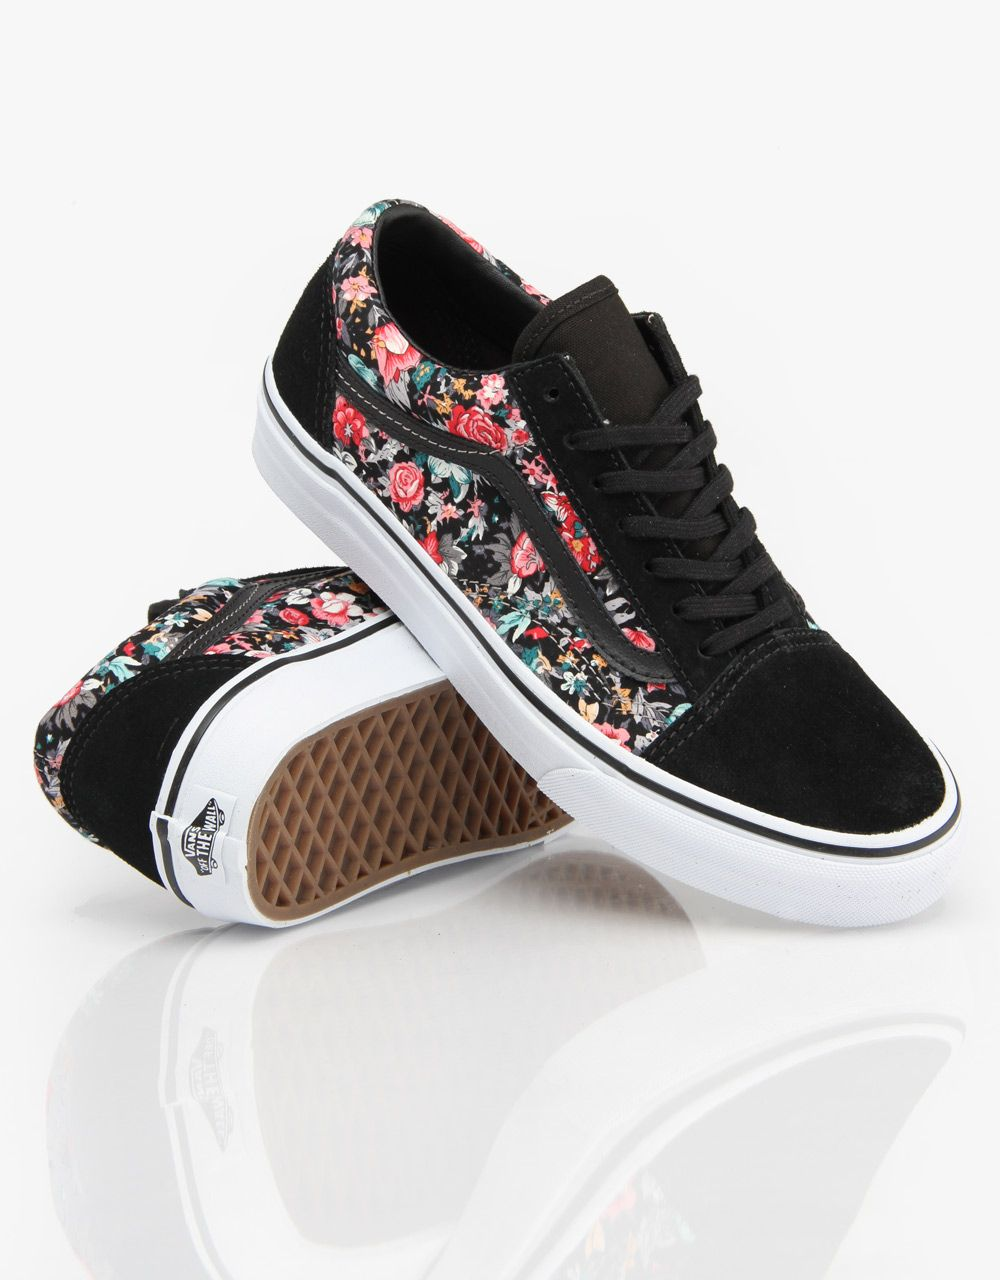 656661bdbc ... Mens. Vans Old Skool Girls Skate Shoes - Multi Floral Black True White  - RouteOne.co.uk